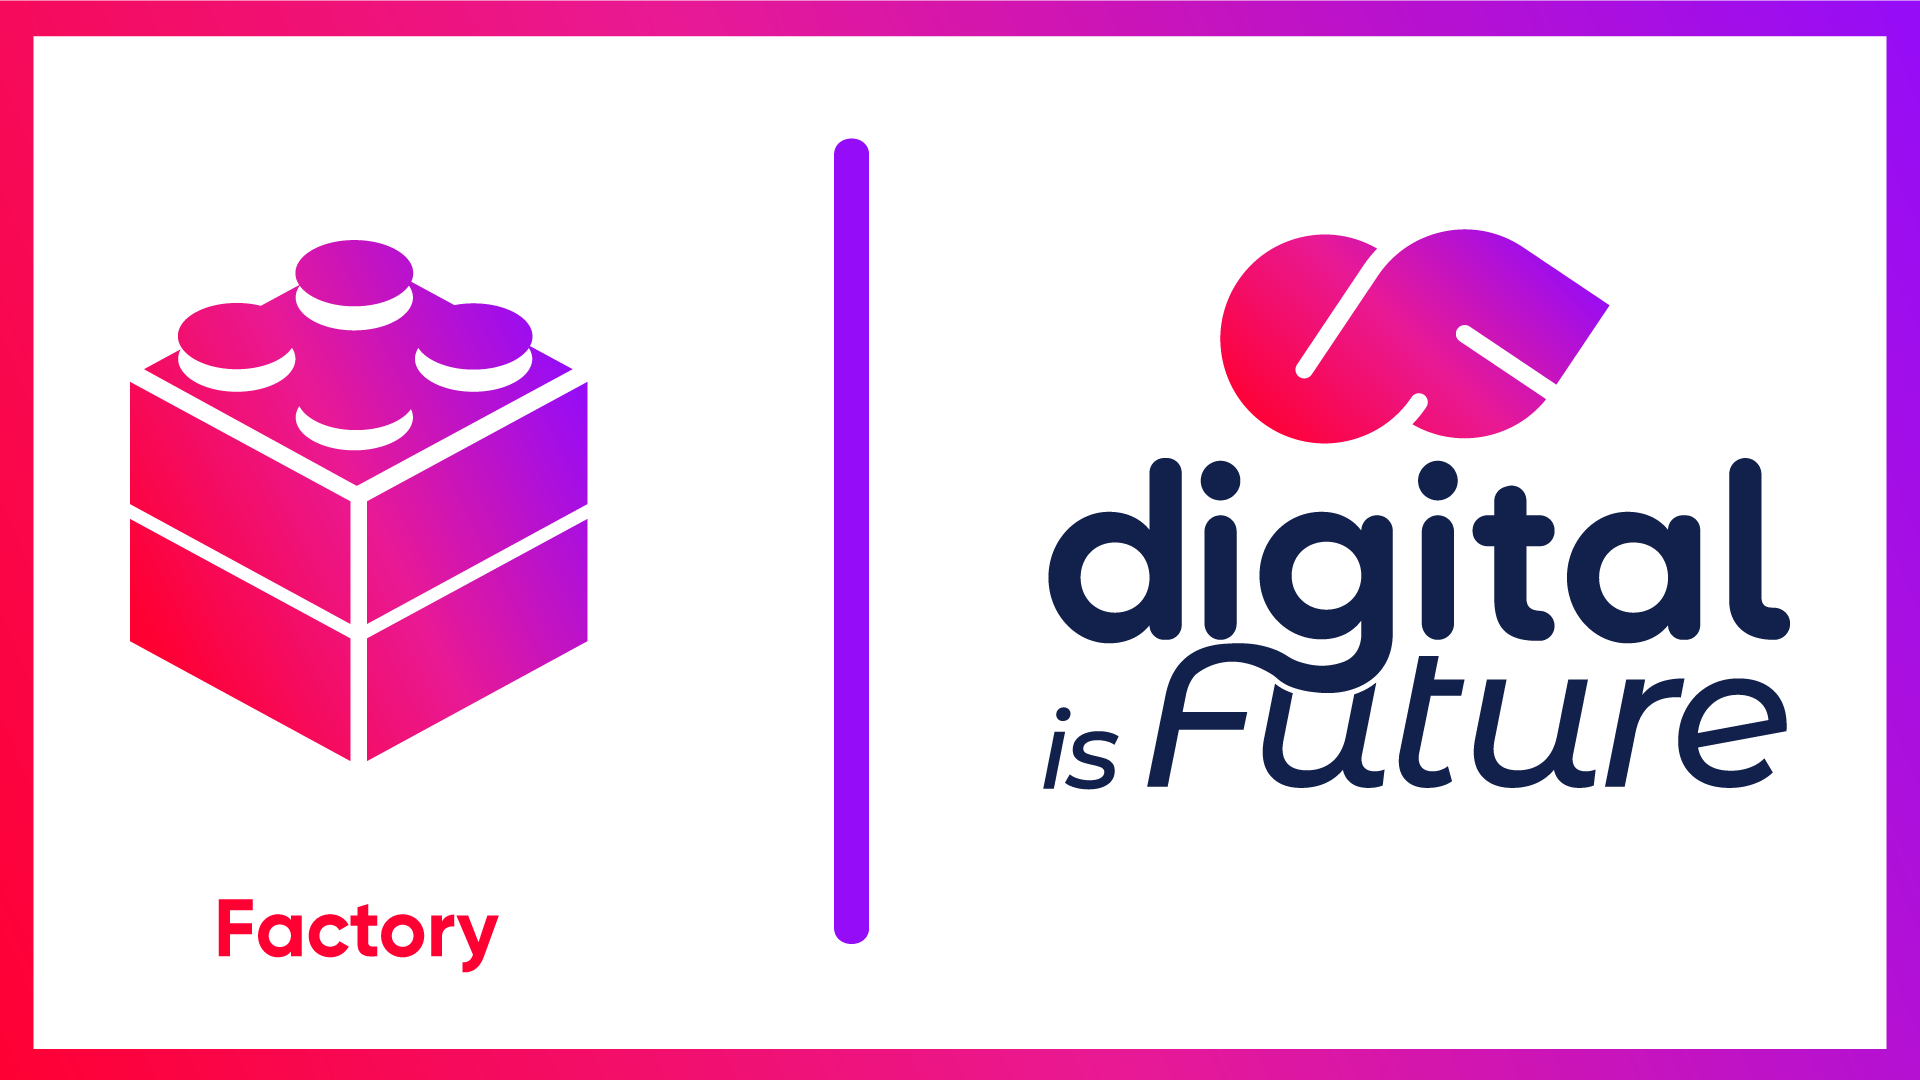 Factory Digital is Future